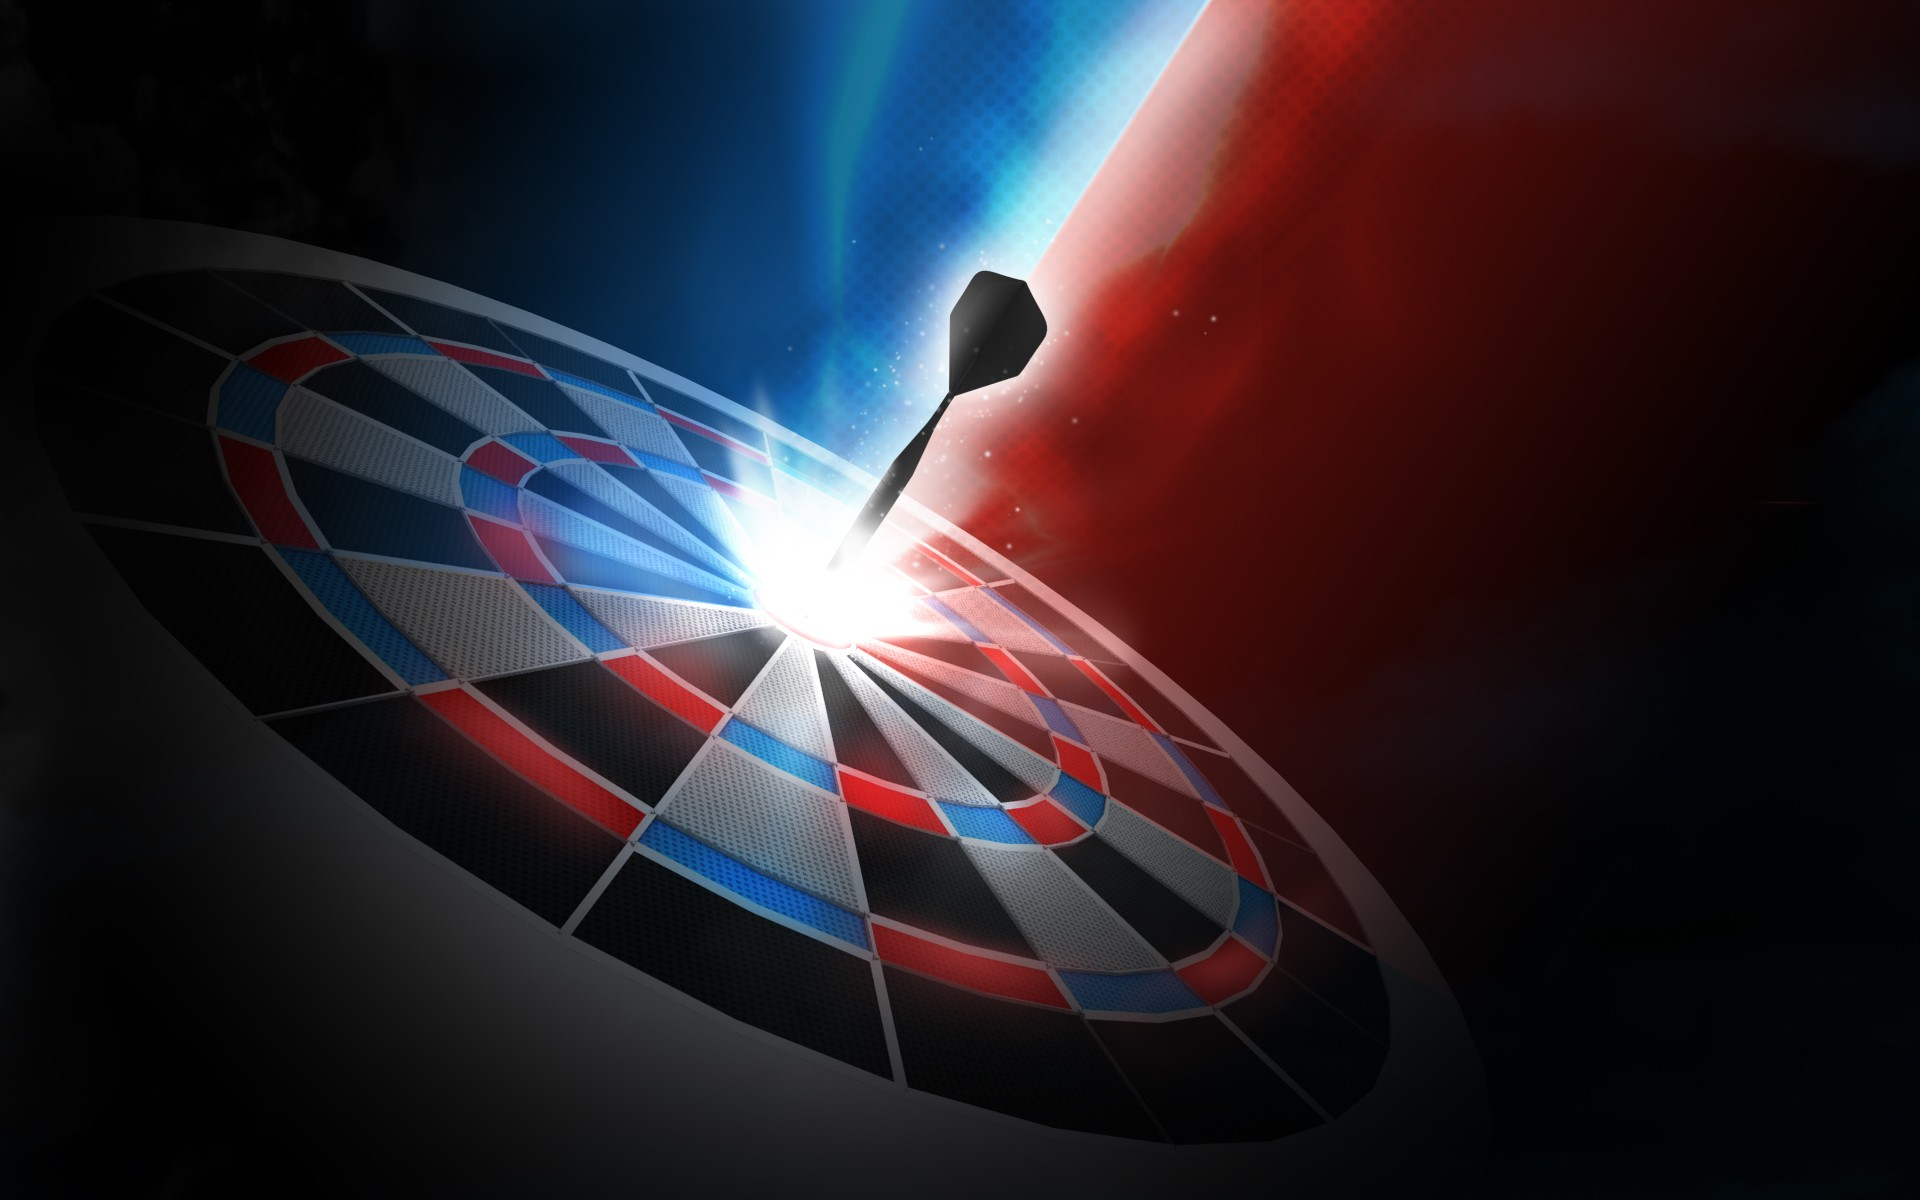 darts board game widescreen computer background 1299